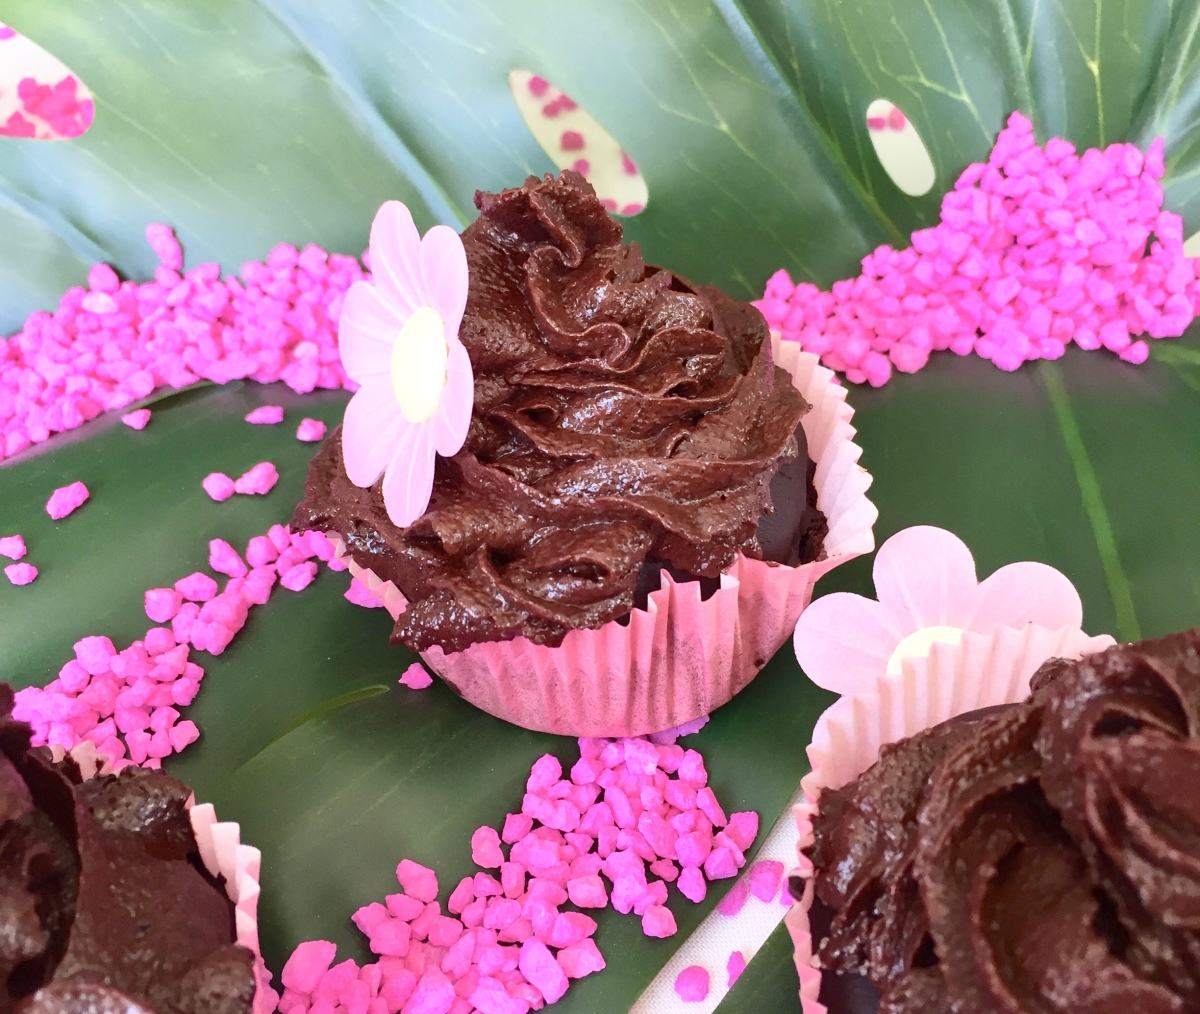 Double chocolate cupcakes - vegan